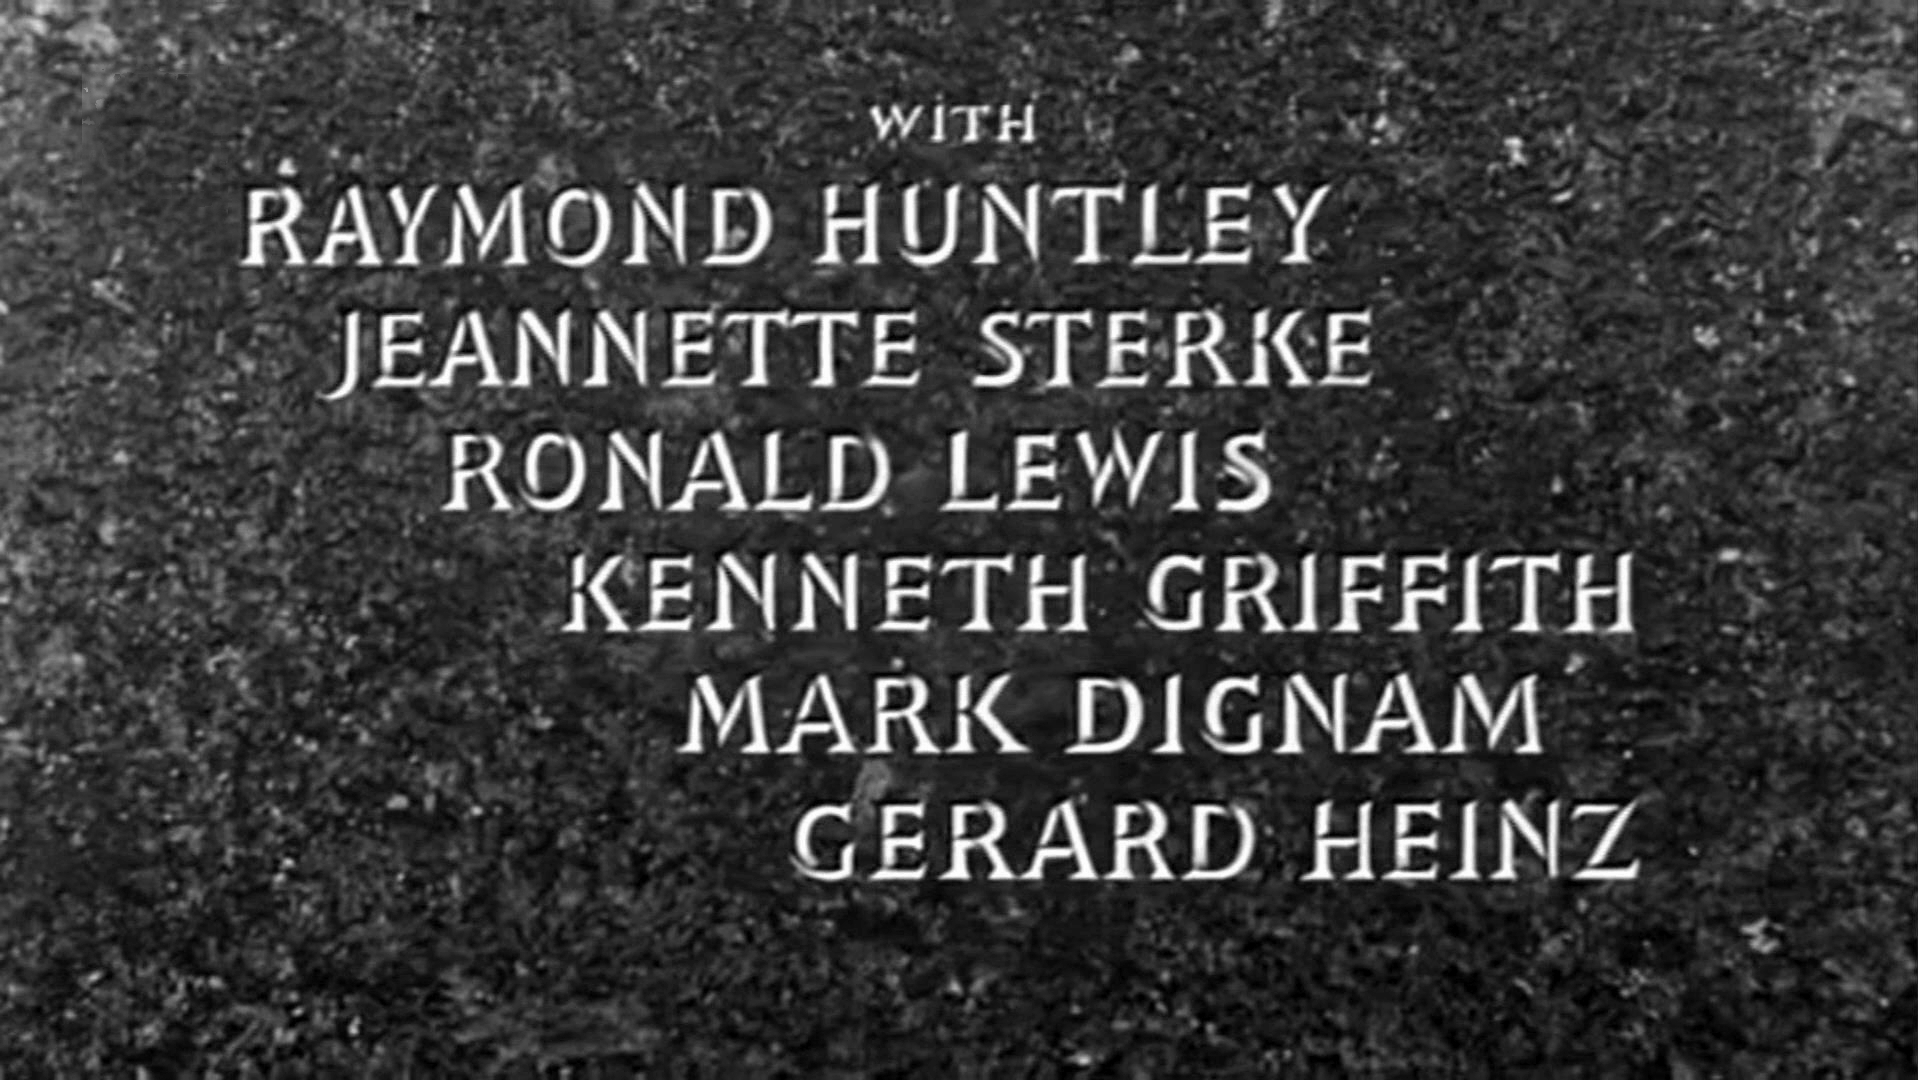 Main title from The Prisoner (1955) (4). With Raymond Huntley, Jeanette Sterke, Ronald Lewis, Kenneth Griffith, Mark Dignam, Gerard Heinz